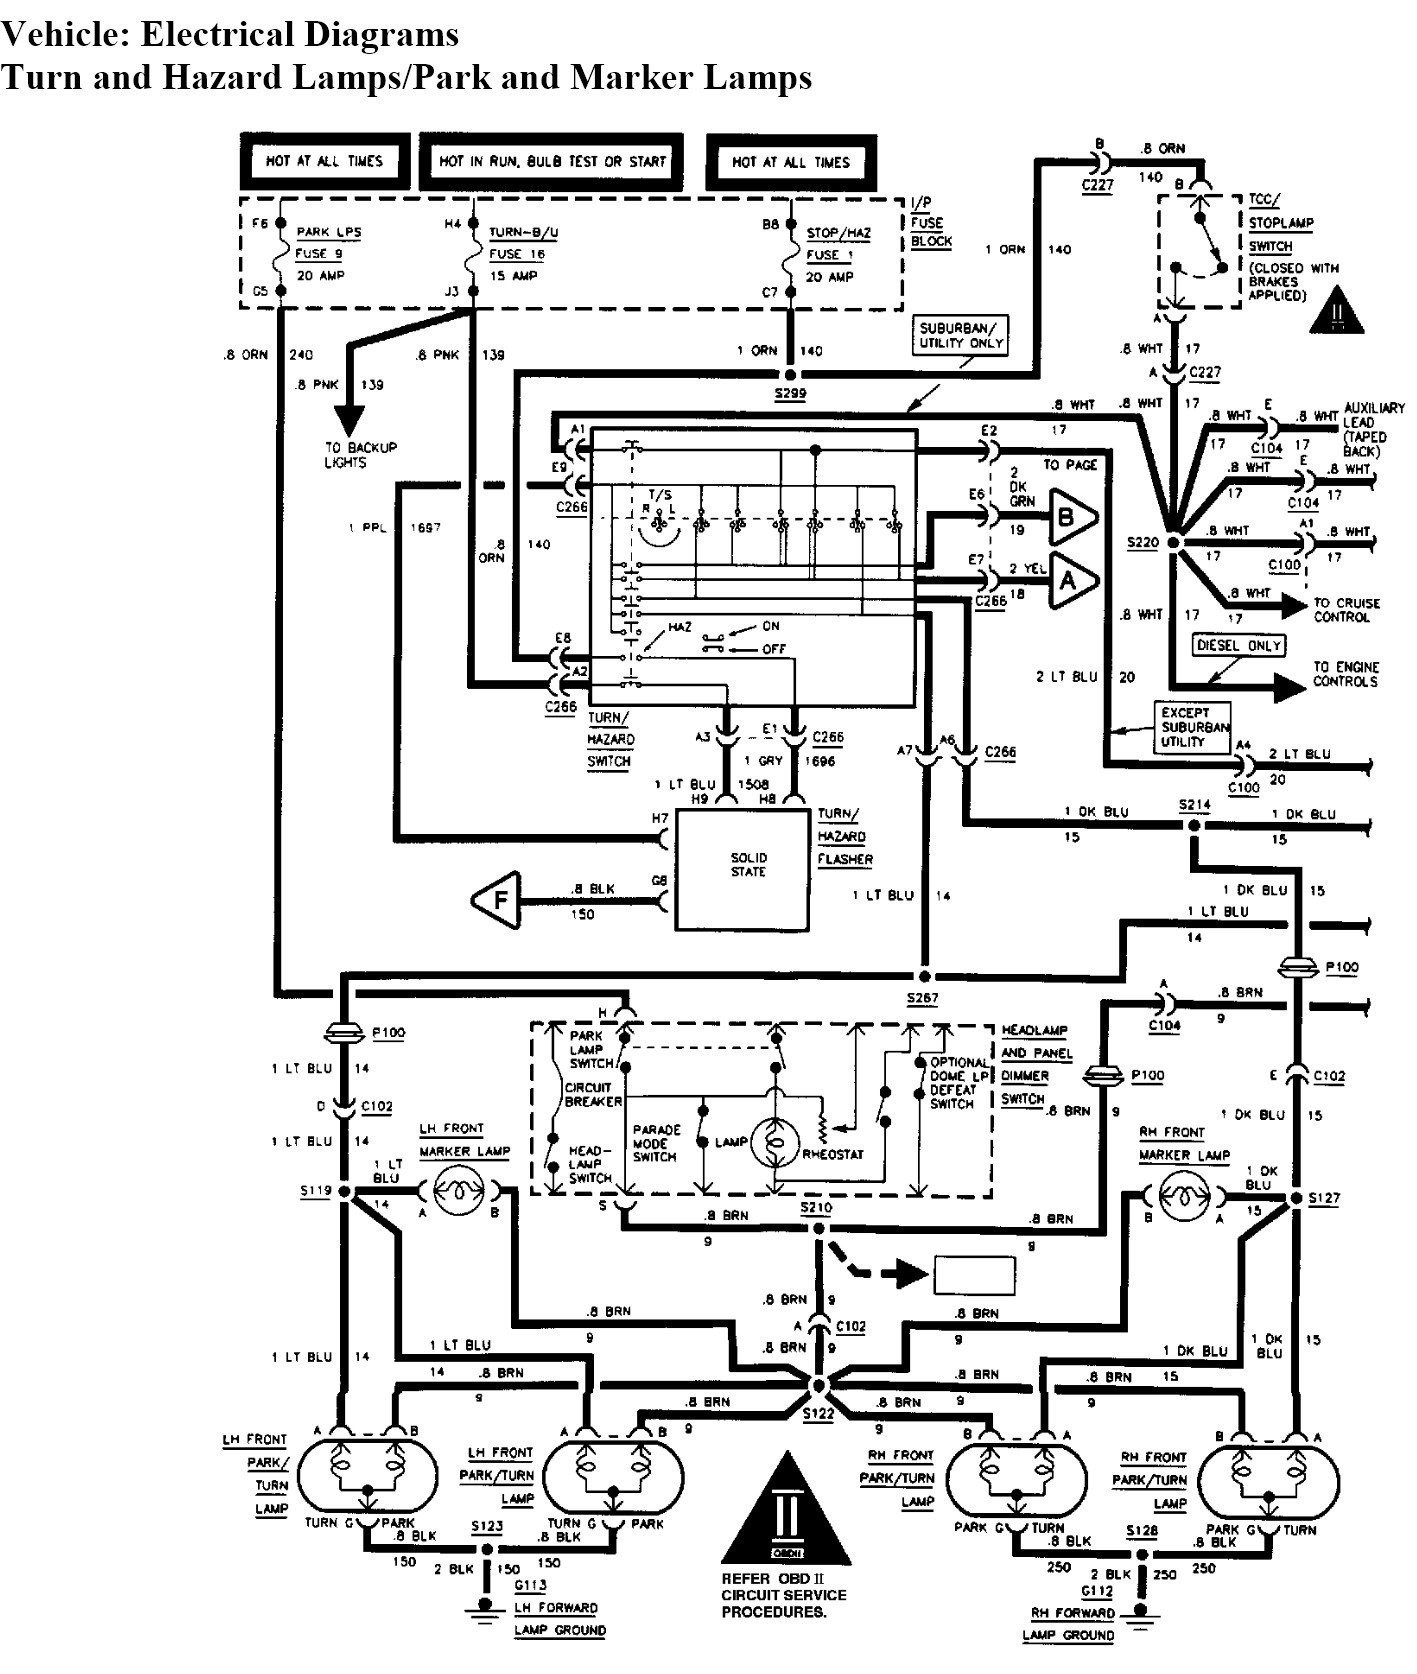 2005 chevy silverado brake light wiring diagram